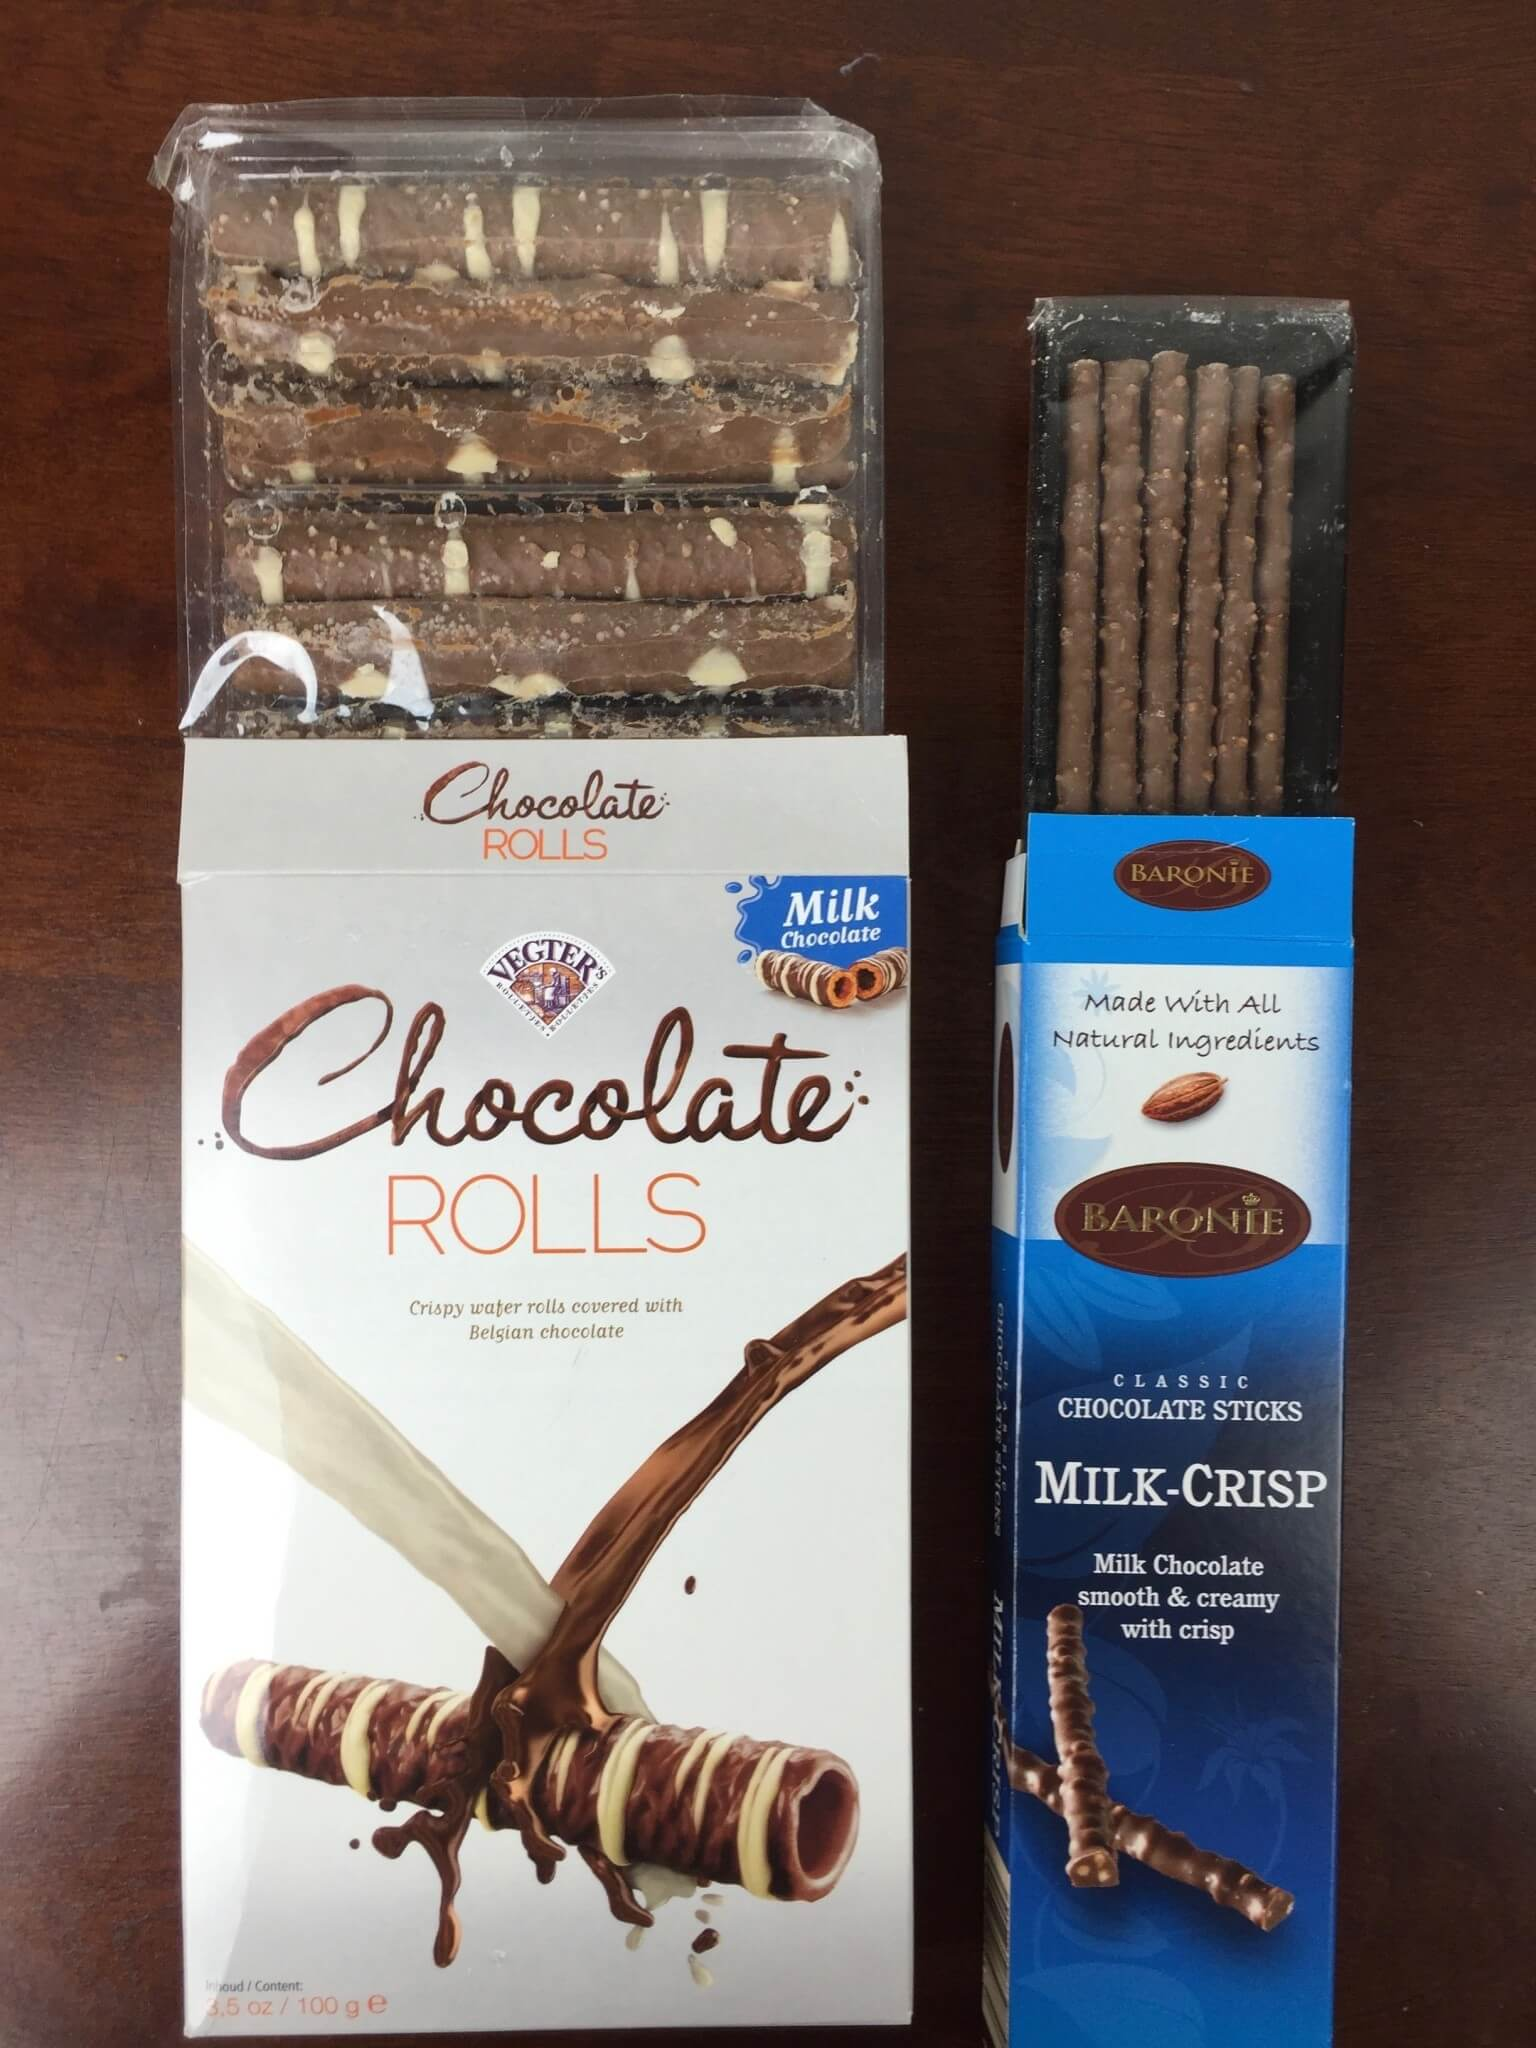 Droste Chocolate Review